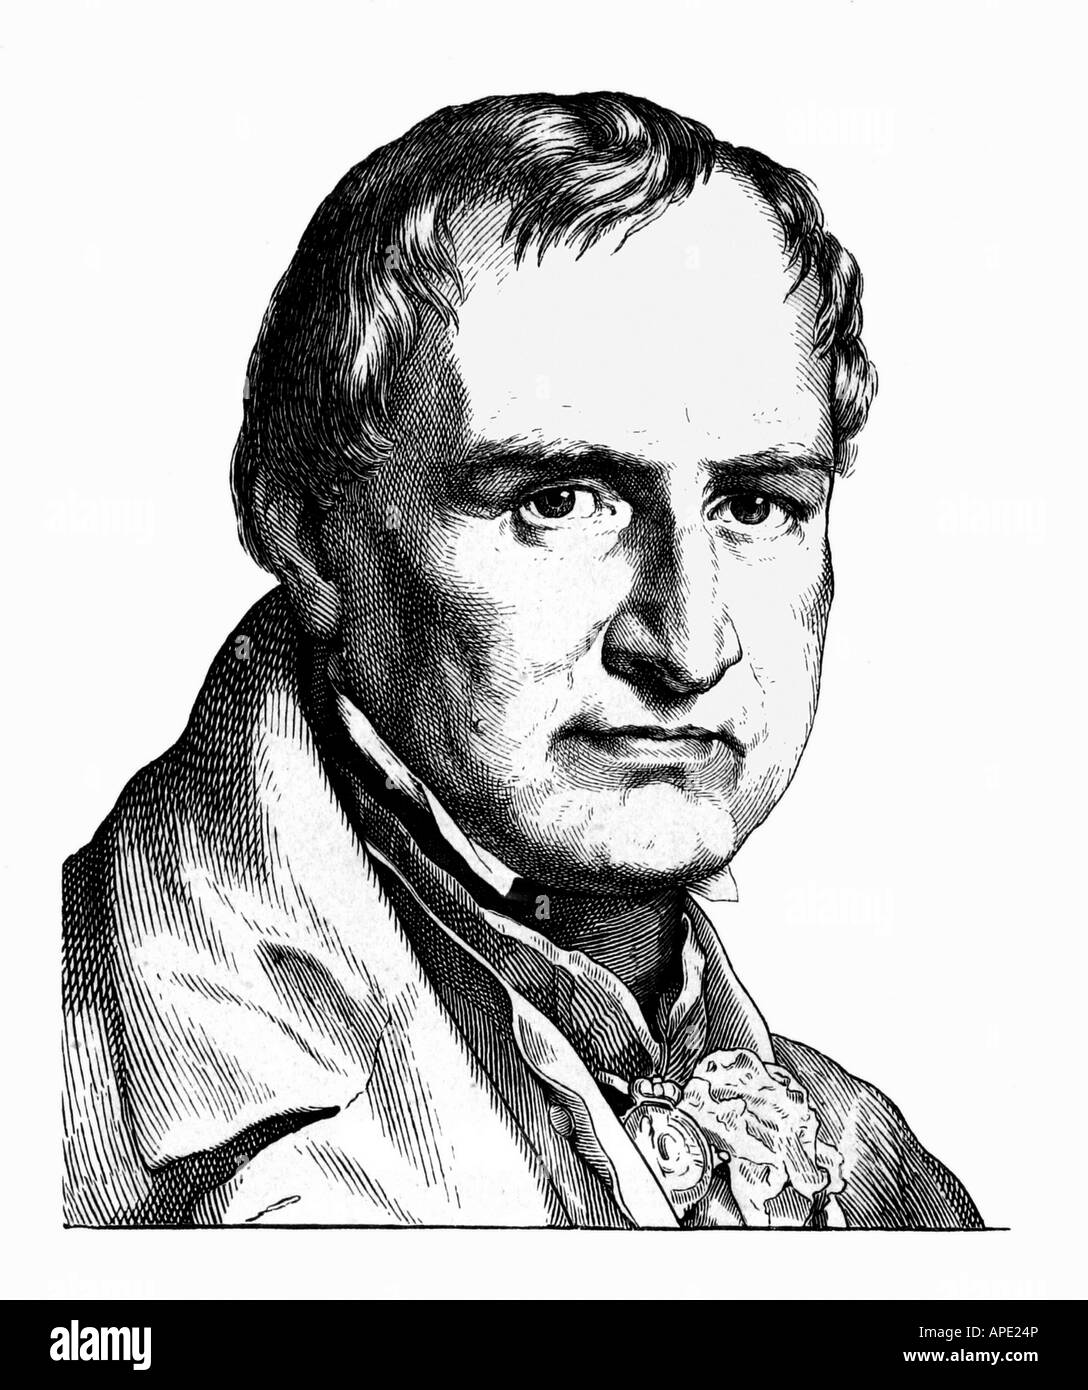 Buch, Christian Leopold von, 26. 4.1774 - 4.3.1853, German geologist, portrait, steel engraving, 19th century, Artist's Copyright has not to be cleared Stock Photo